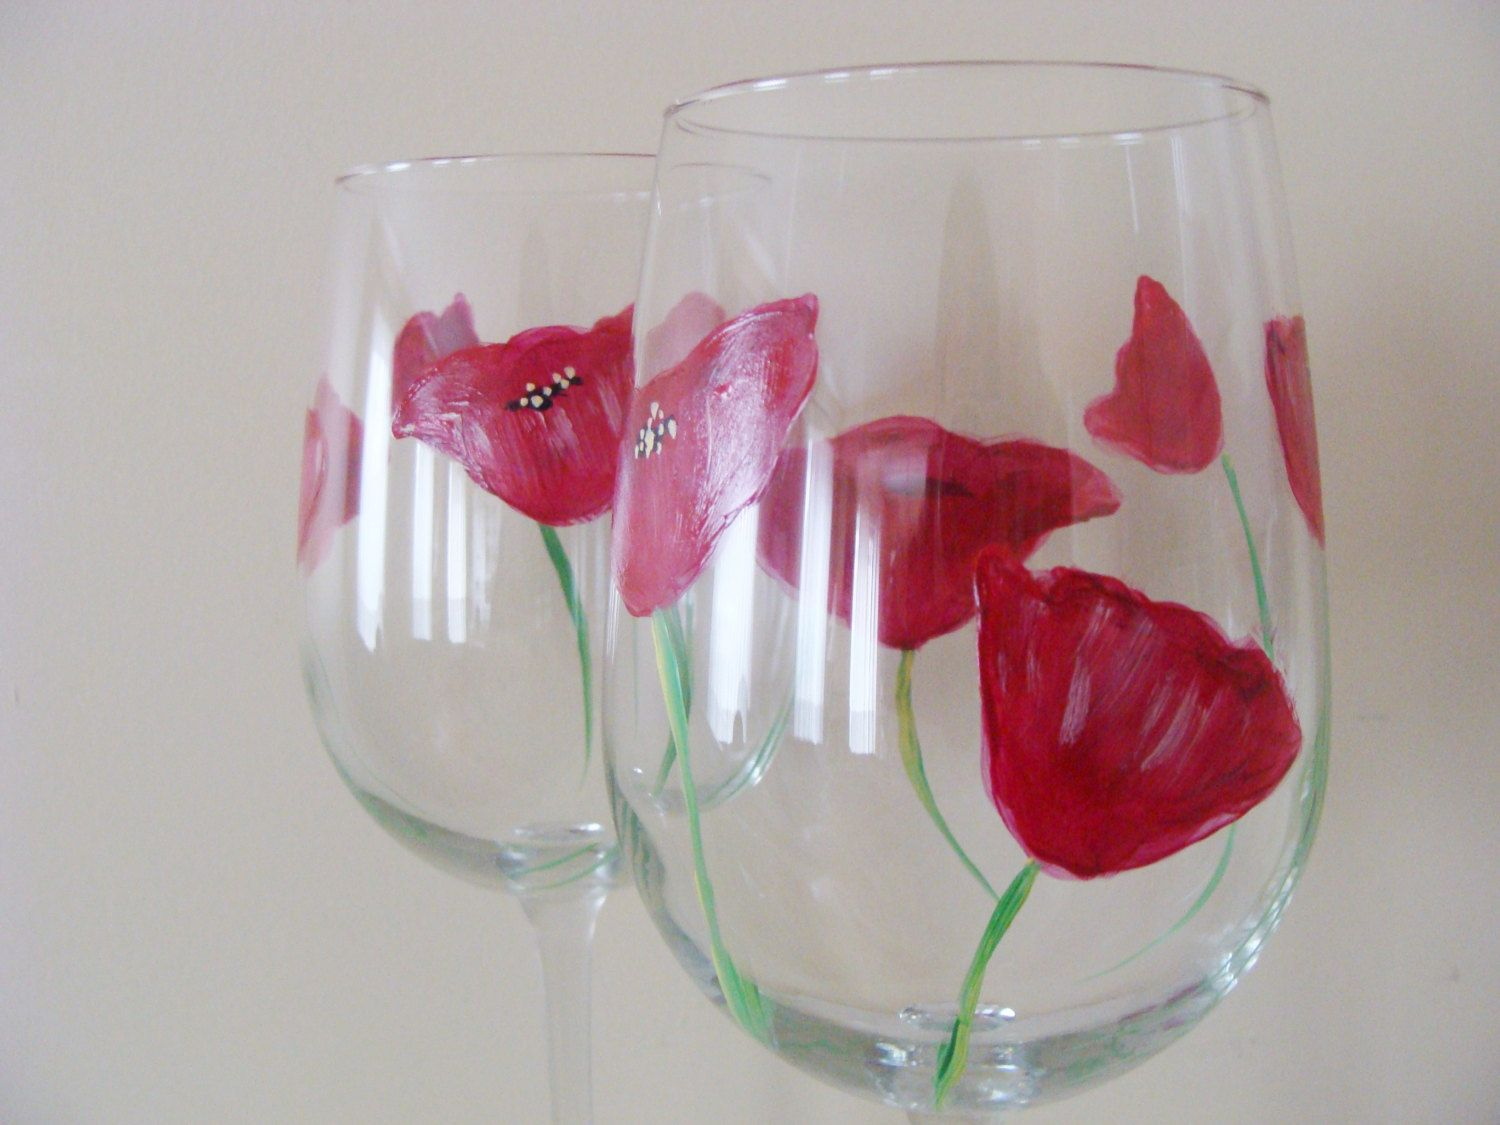 Poppy Wine Glasses Hand Painted By Canadiancreationz On Etsy Hand Painted Wine Glasses Wine Glasses Painted Wine Glasses